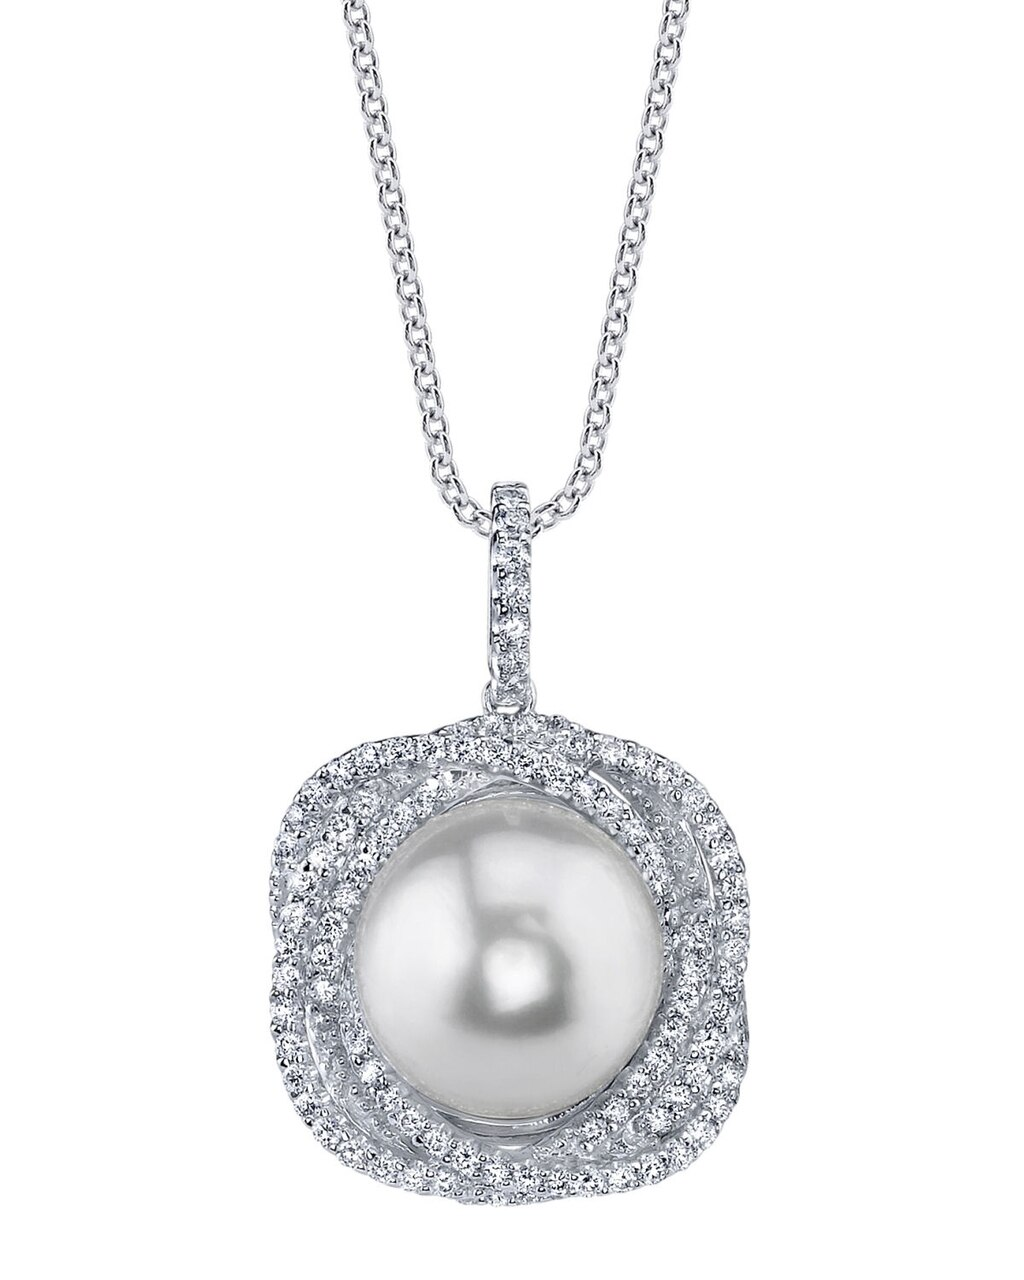 This exquisite pendant features an 11.0-12.0mm White South Sea Pearl, handpicked for its luminous luster